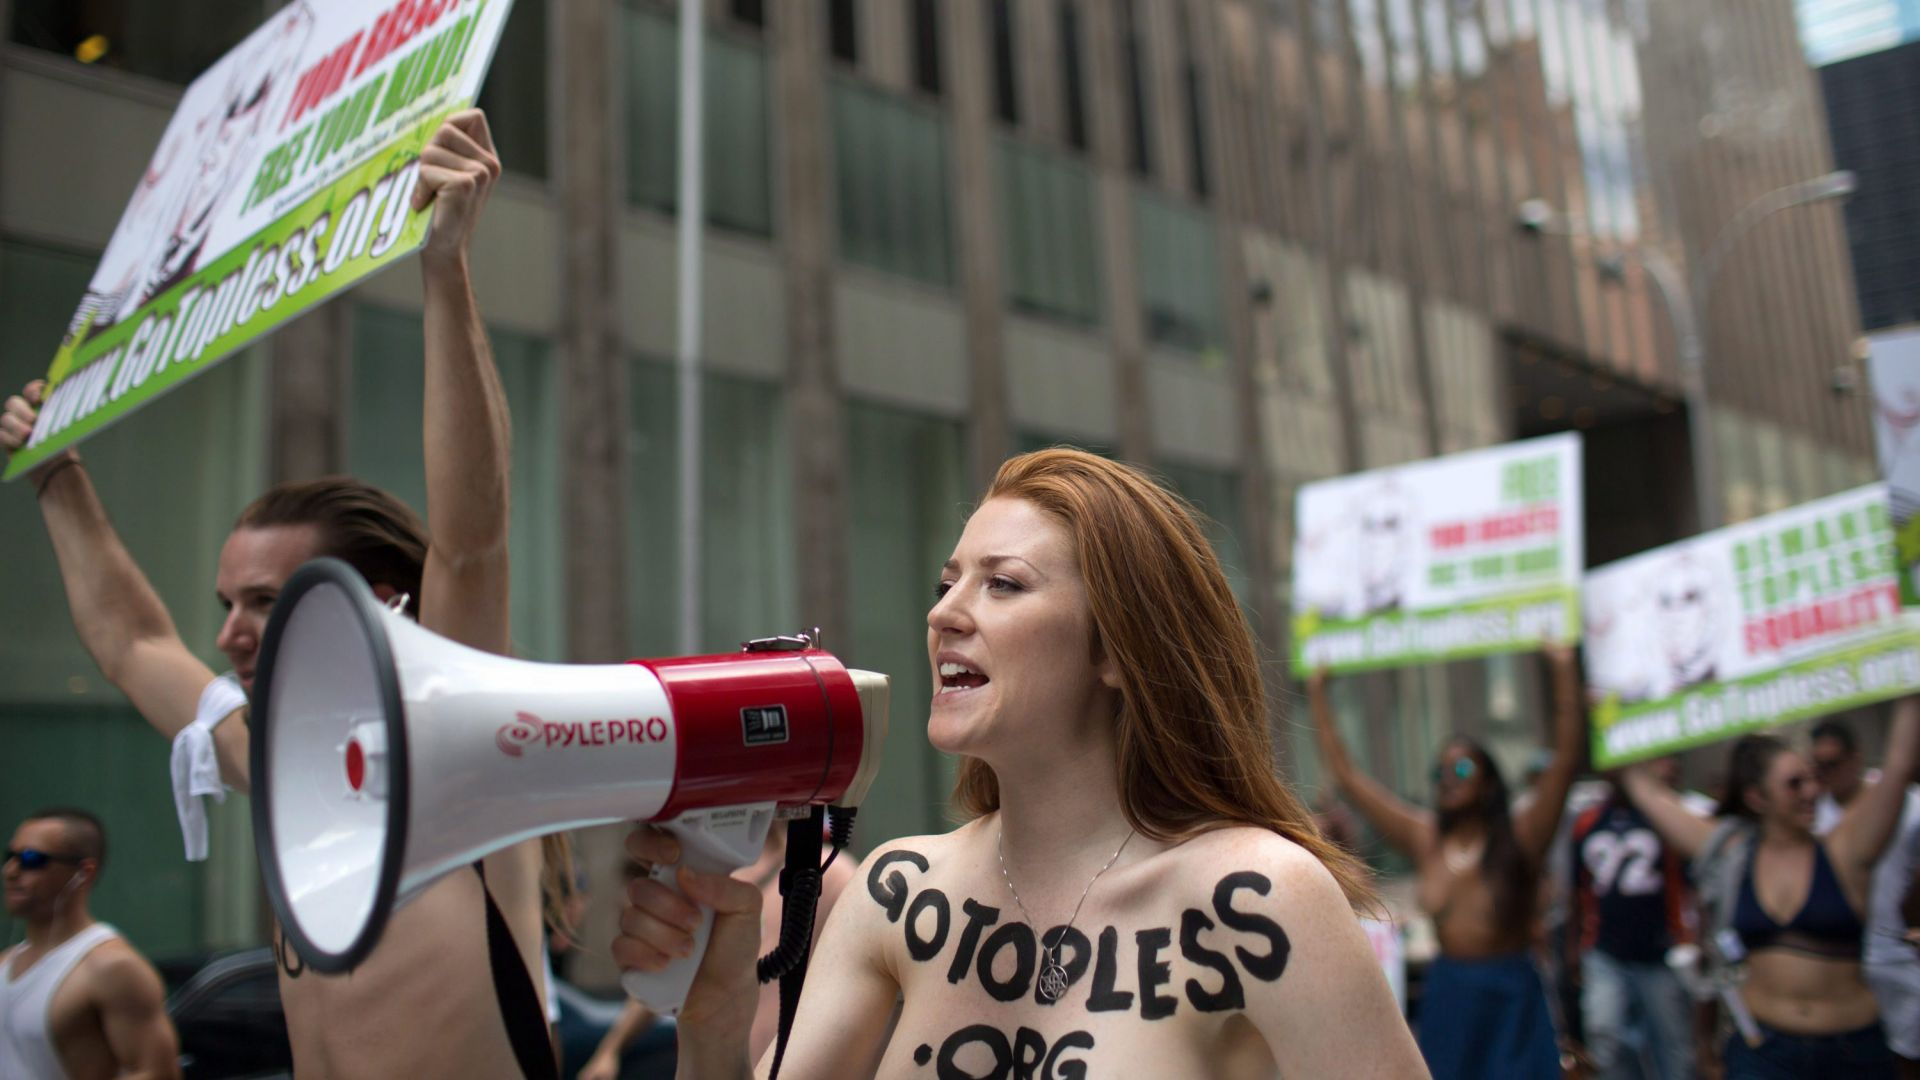 It's not illegal to go topless in New York City.